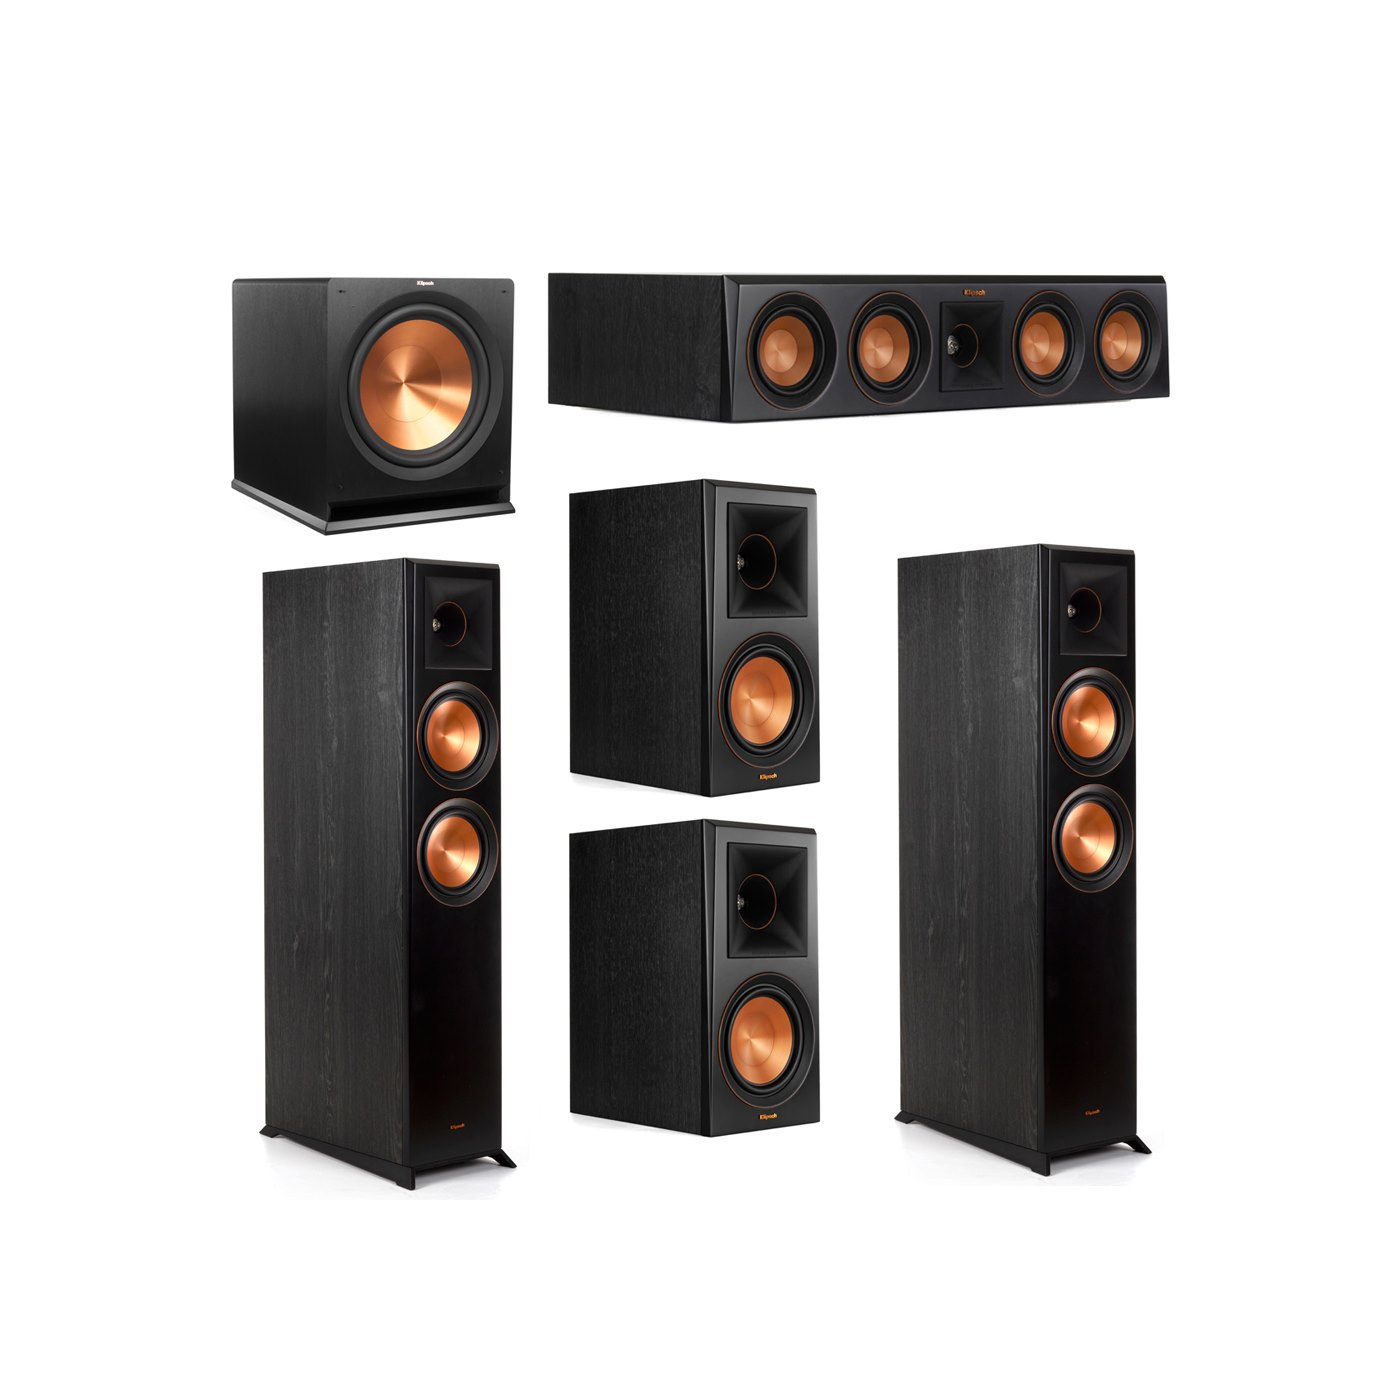 Klipsch 5.1 System with 2 RP-6000F Floorstanding Speakers, 1 Klipsch RP-404C Center Speaker, 2 Klipsch RP-600M Surround Speakers, 1 Klipsch R-115SW Subwoofer